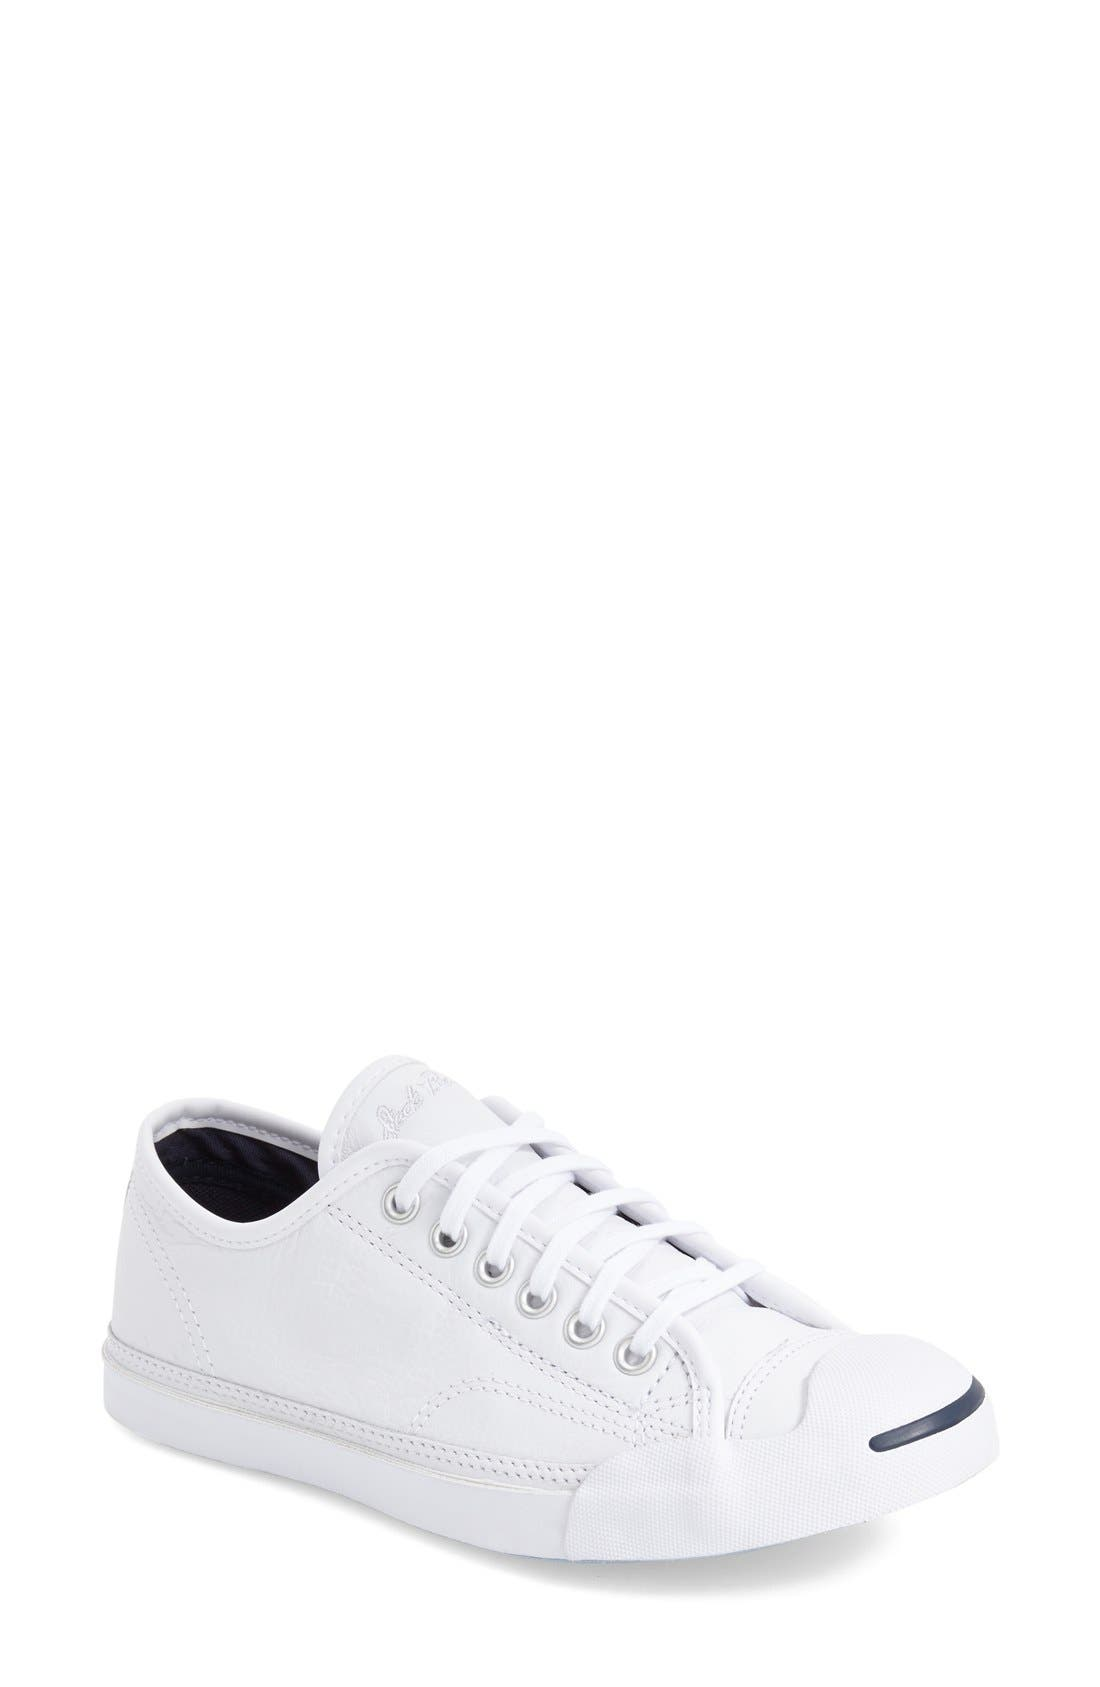 'Jack Purcell' Low Top Sneaker,                         Main,                         color, 100